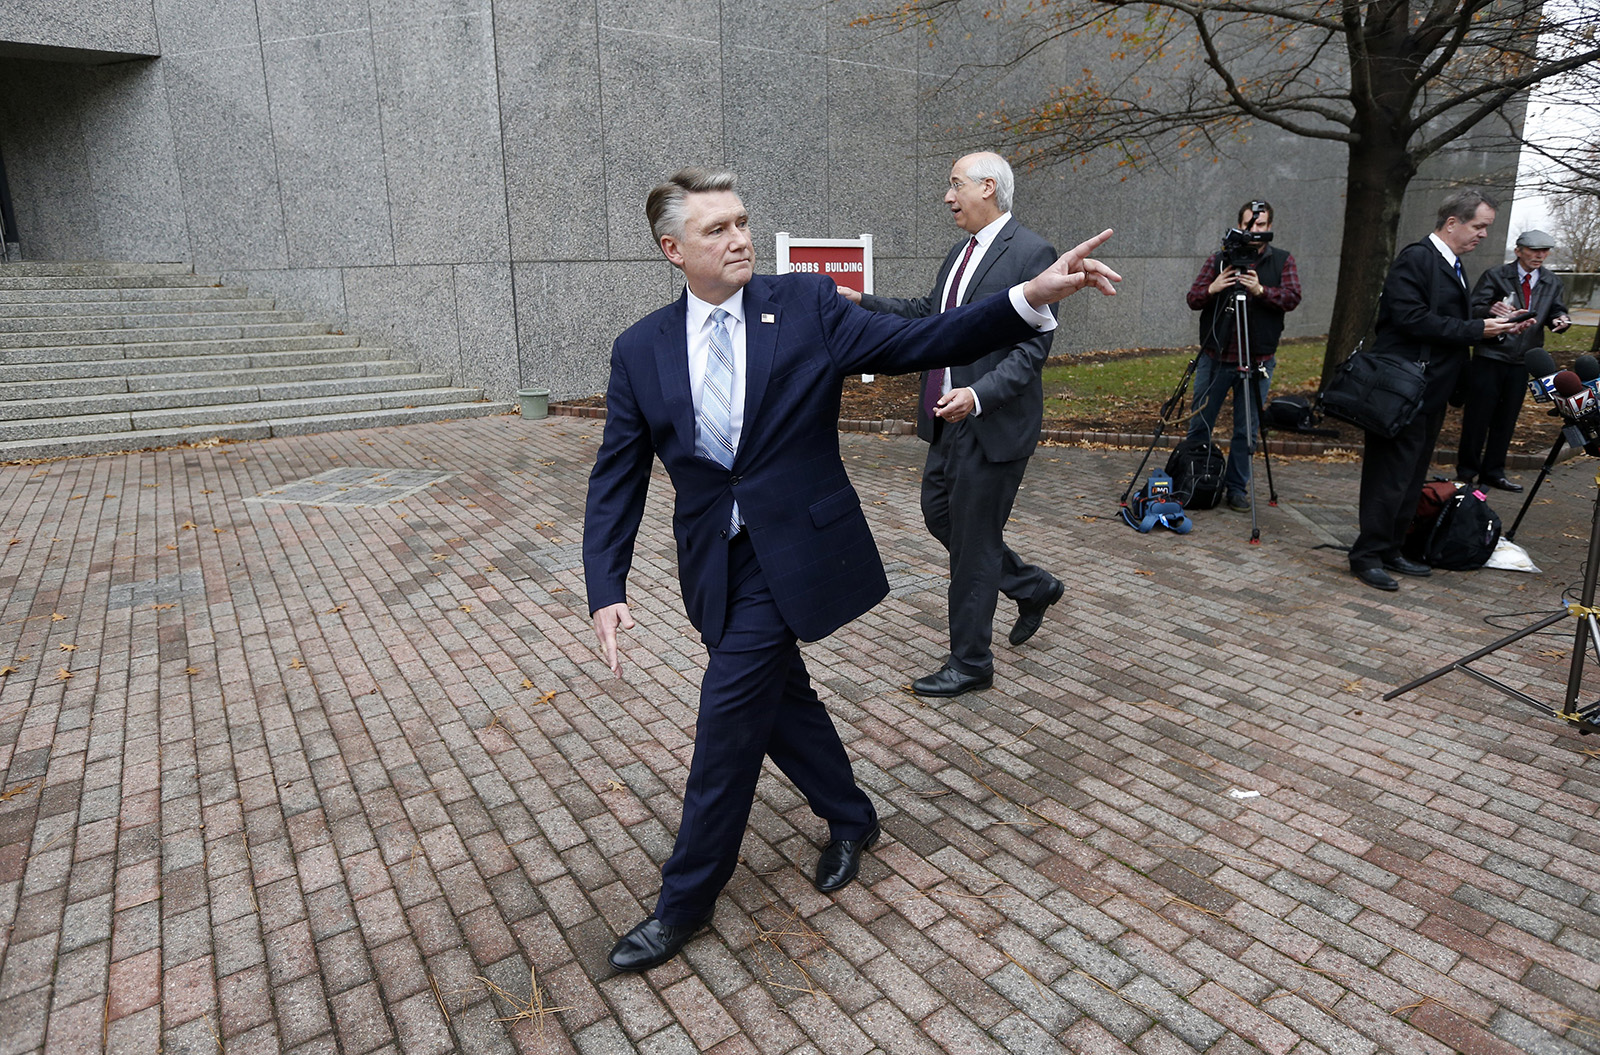 Republican Mark Harris, left, and his attorney David Freedman leave after speaking with the media following a meeting with state election investigators on Thursday, Jan. 3, 2019 at the Dobbs Building in Raleigh, N.C. (Ethan Hyman/Raleigh News & Observer/TNS)